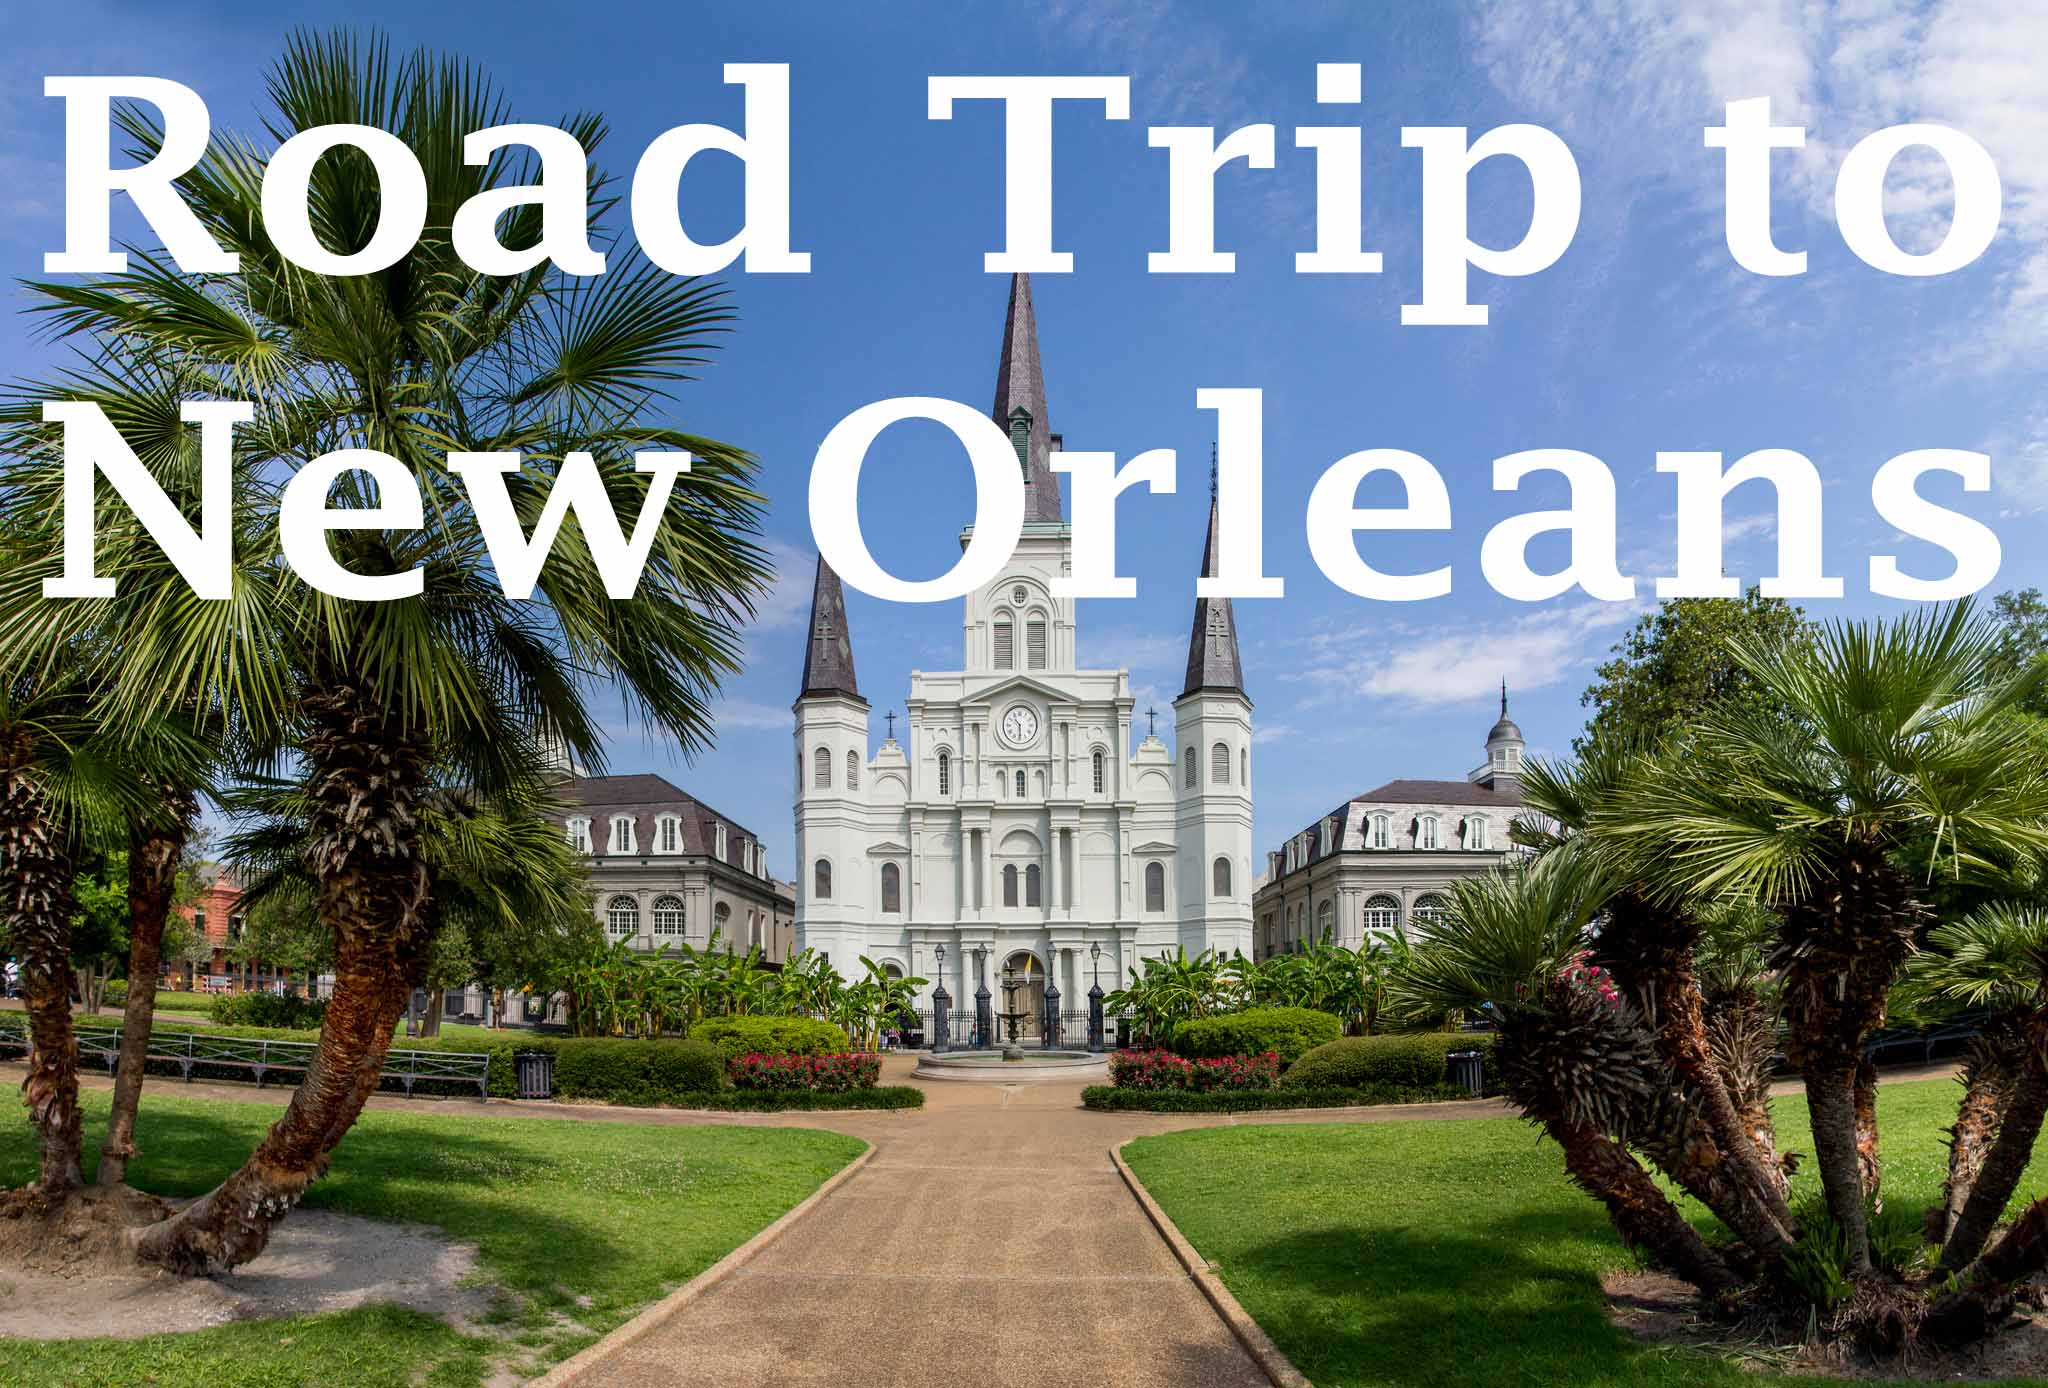 Our Road Trip To New Orleans From Boston Horrible And Exciting - New orleans vacations